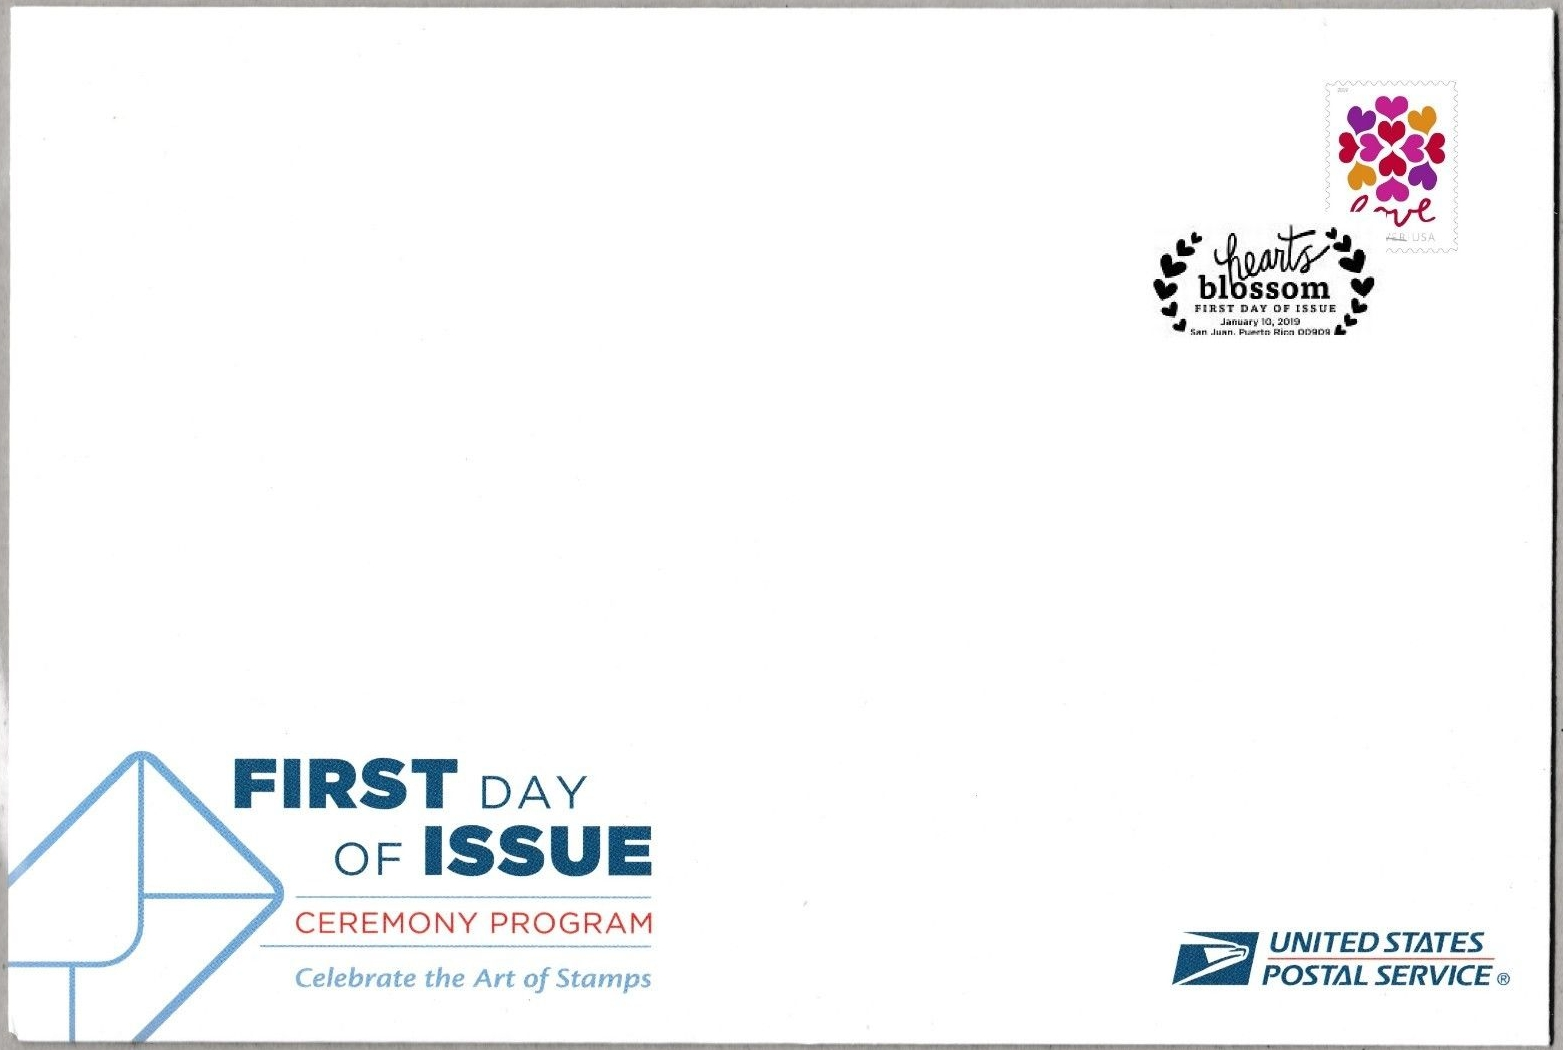 United States - Hearts Blossom (January 10, 2019) first day of issue ceremony program